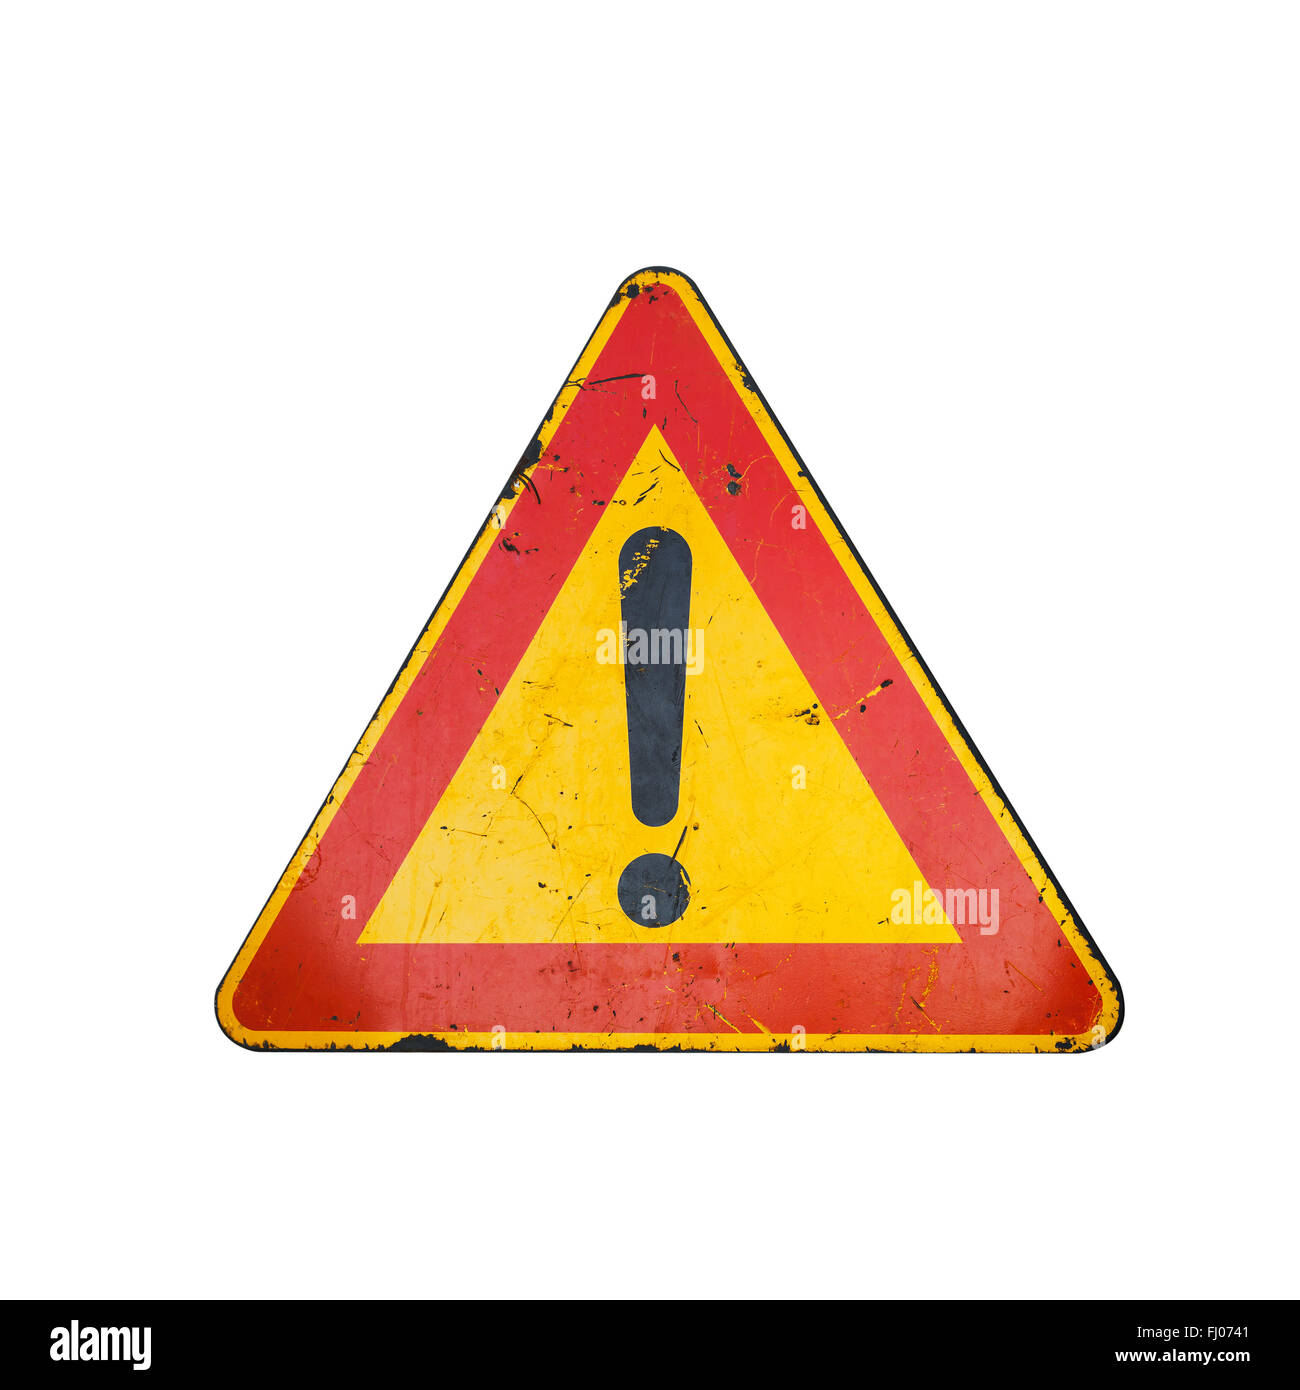 Bright red and yellow triangle warning road sign with